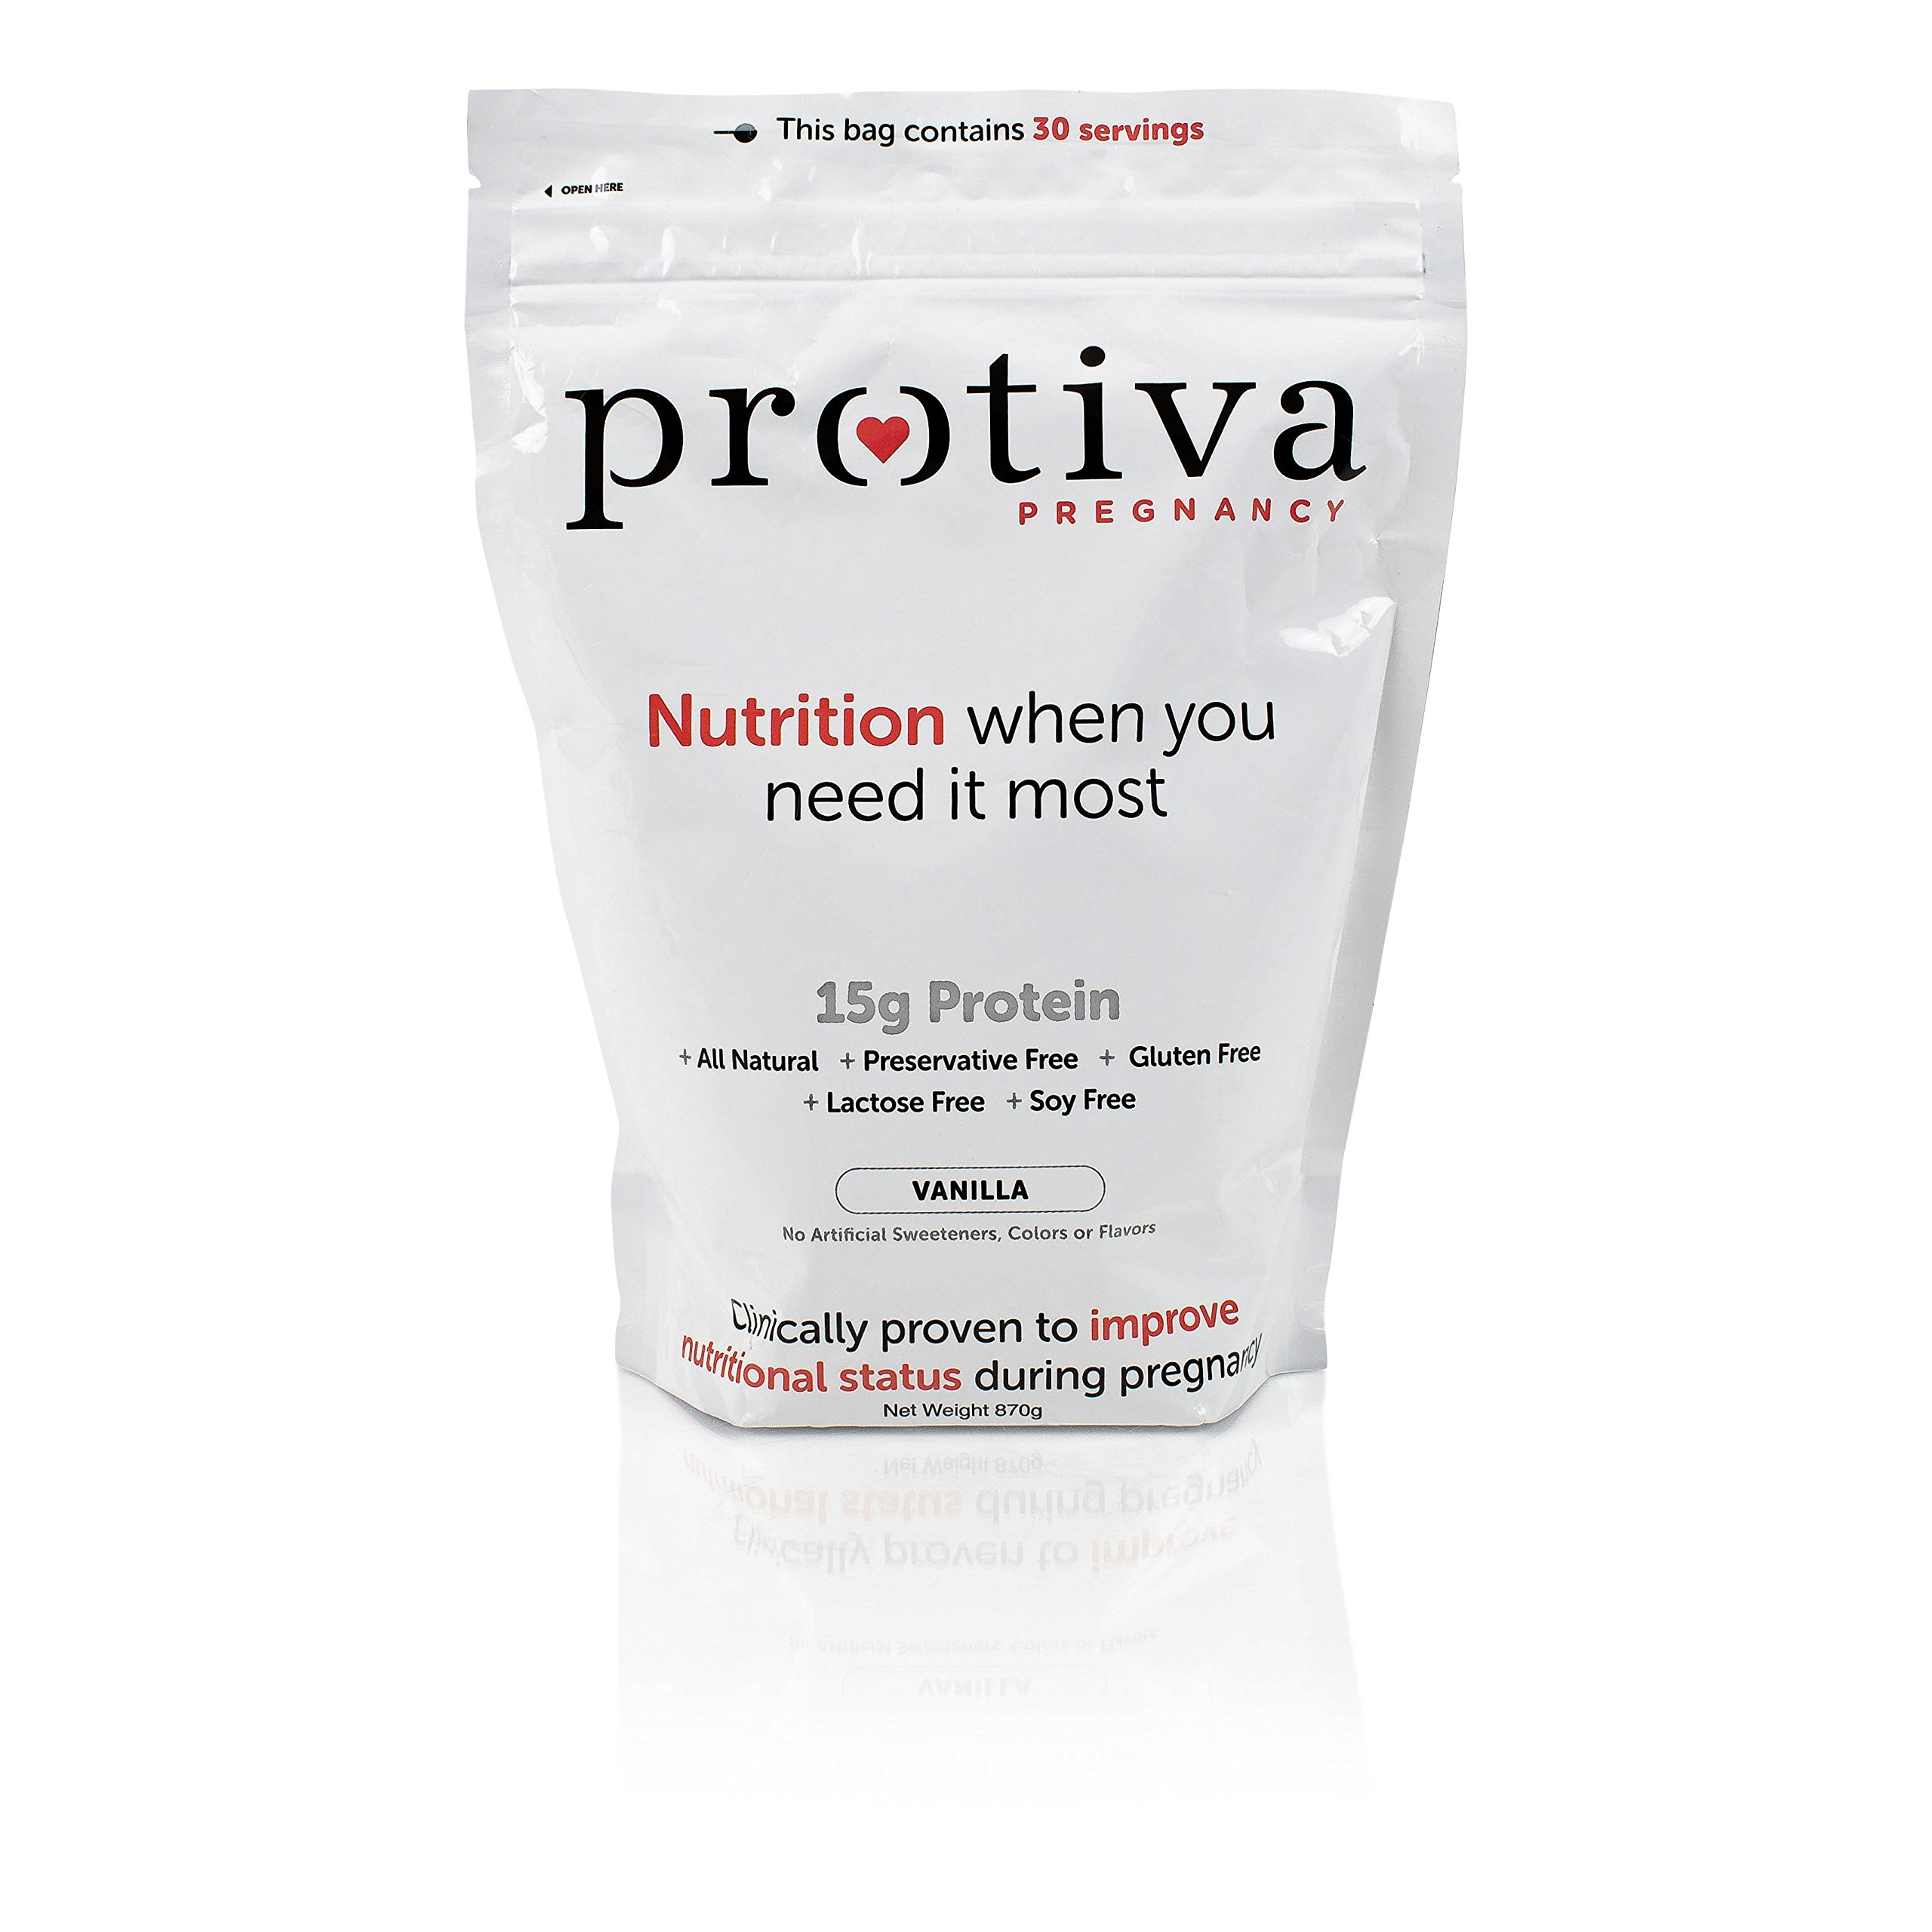 Protiva Pregnancy Collagen Protein Powder, 30 Servings, 2lbg Bag, Clinically Proven Safe, All Natural, Non-GMO, Allergen, Gluten, Dairy and Soy Free, No Artificial Sweeteners, Improve Stretch Marks